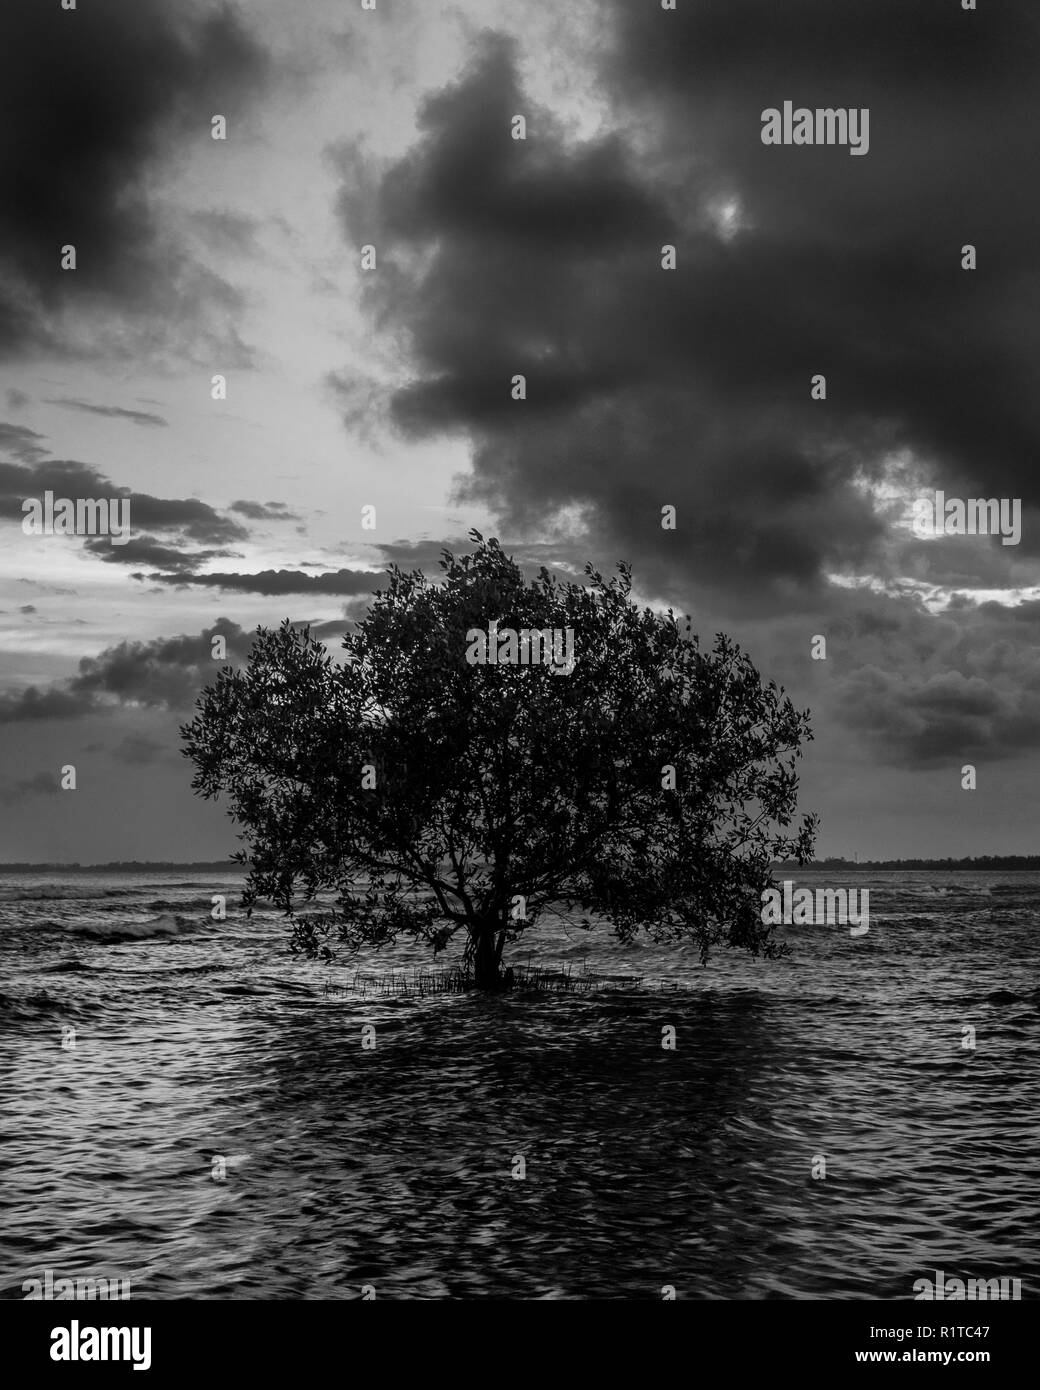 Minimalist black and white image of a tree at the beach during low tide with dark cloudy sky - Stock Image